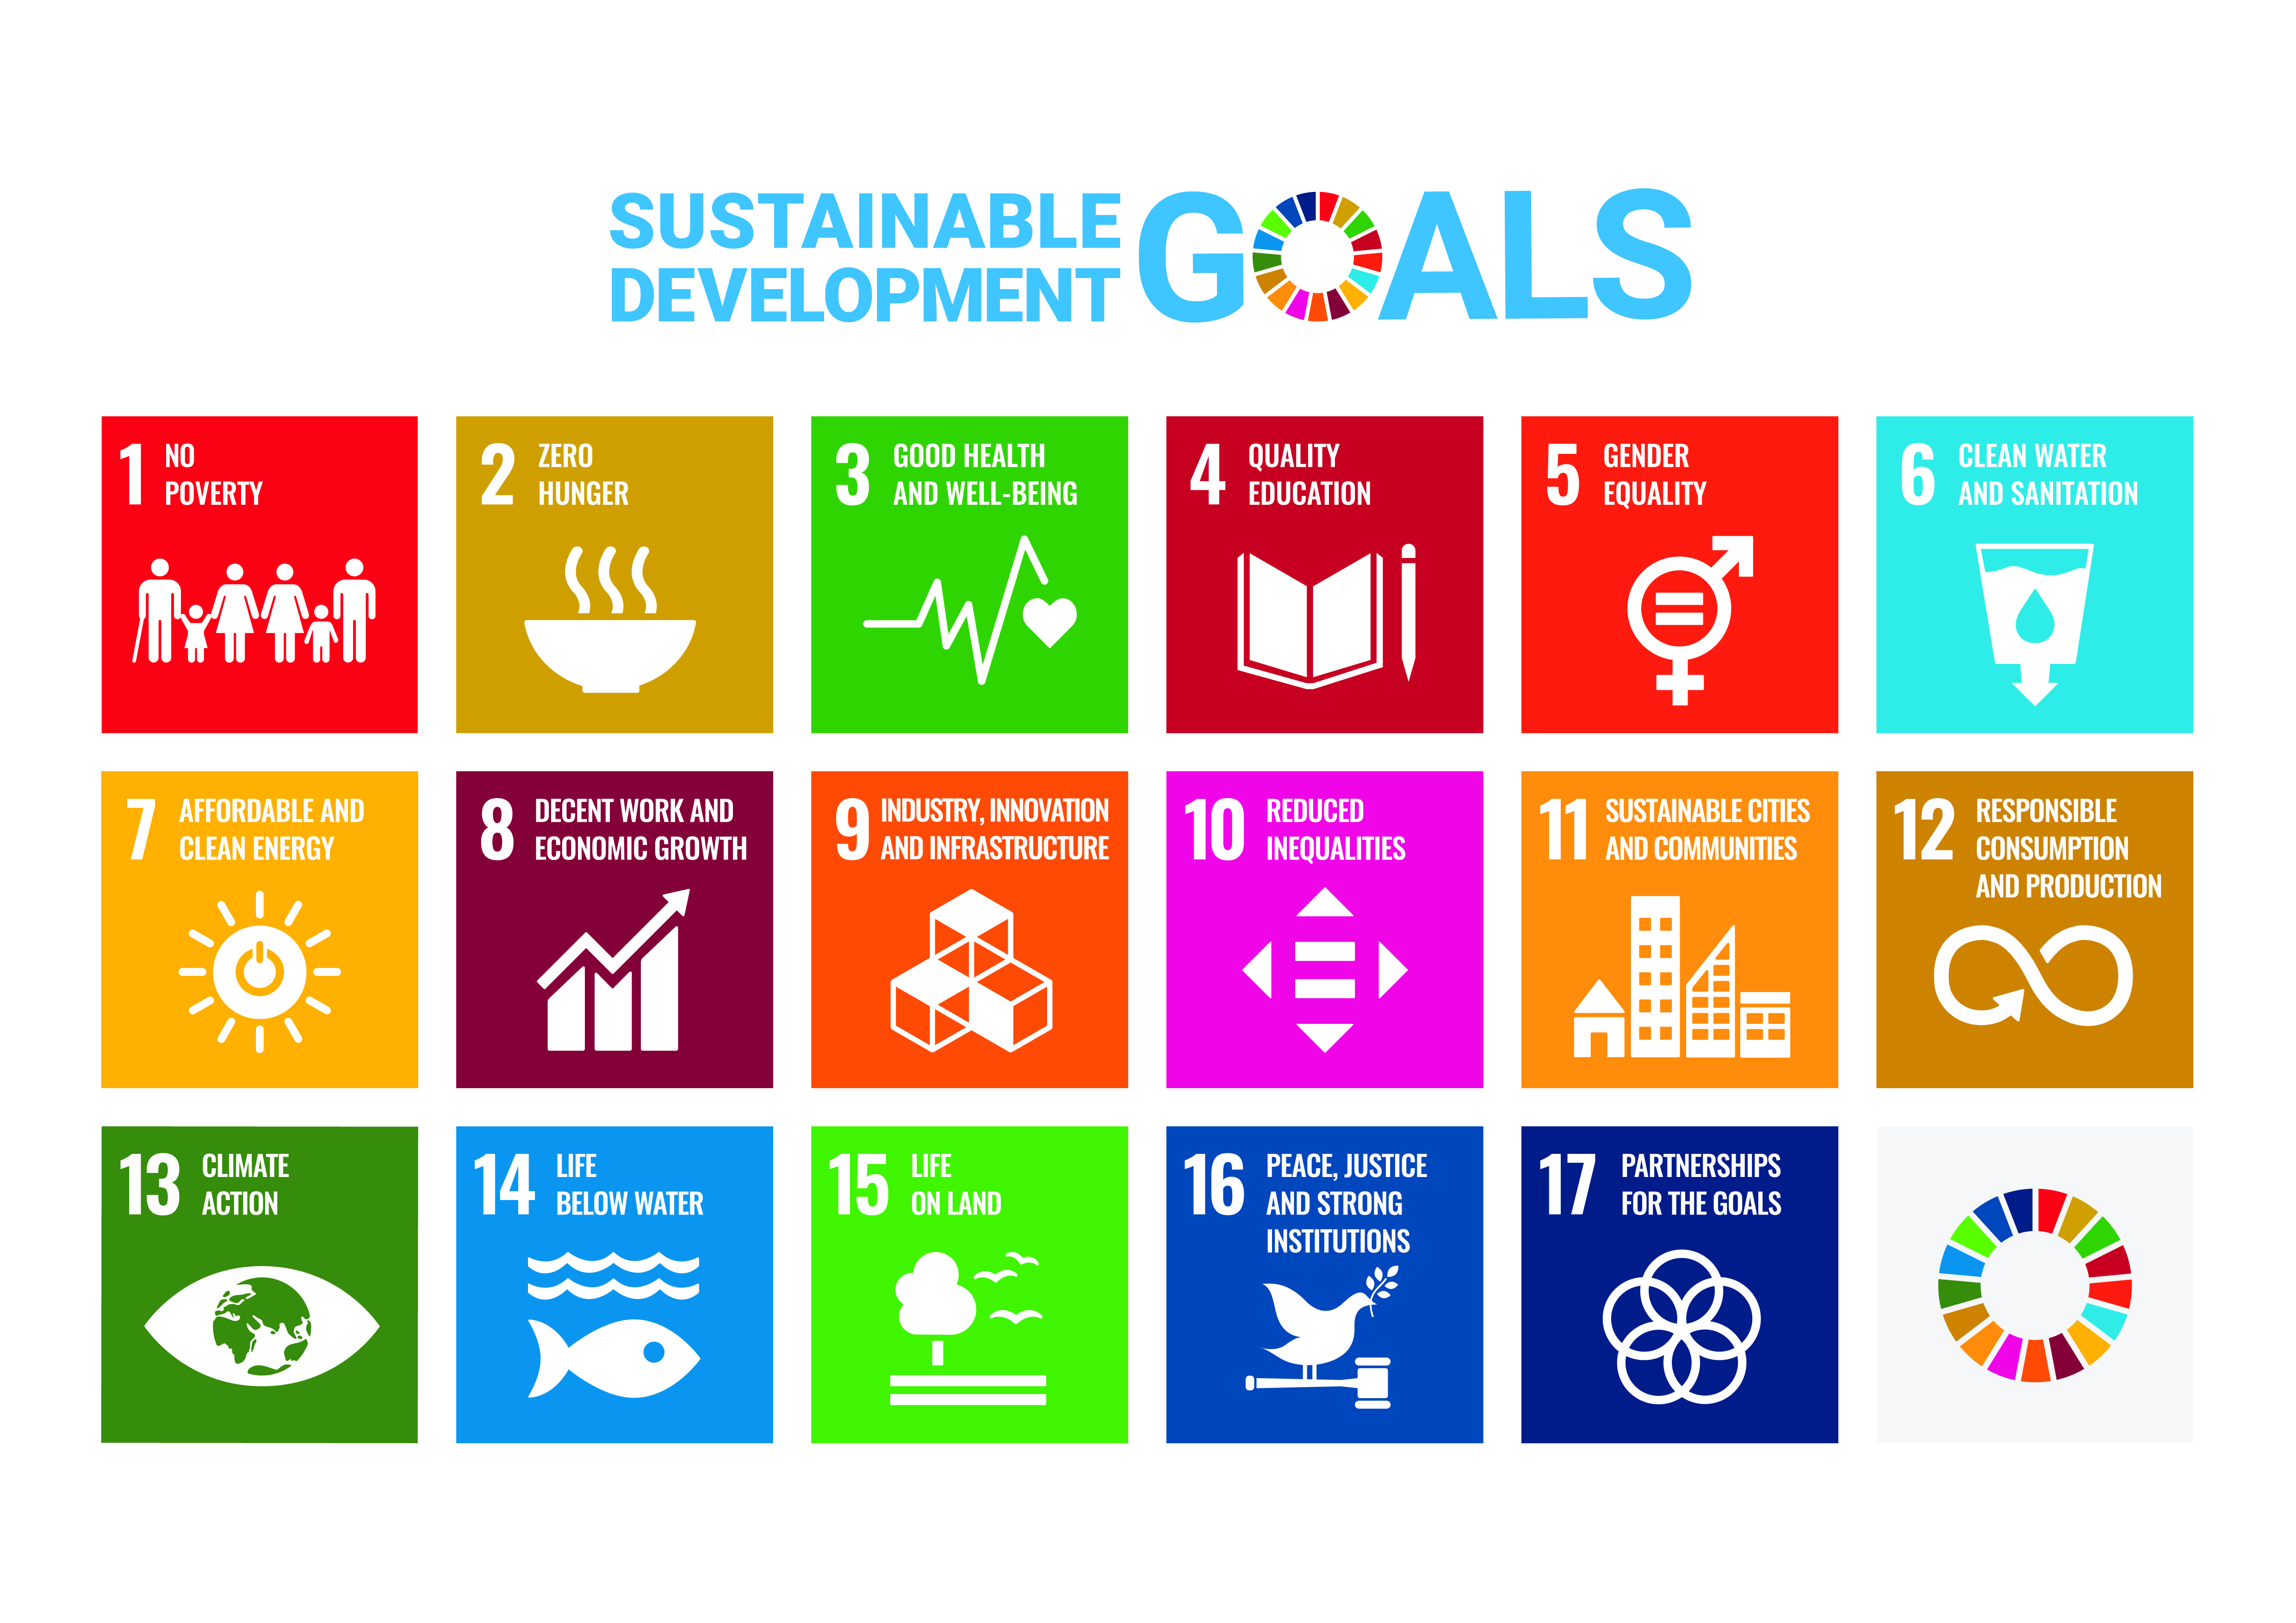 Our work on the SDGs